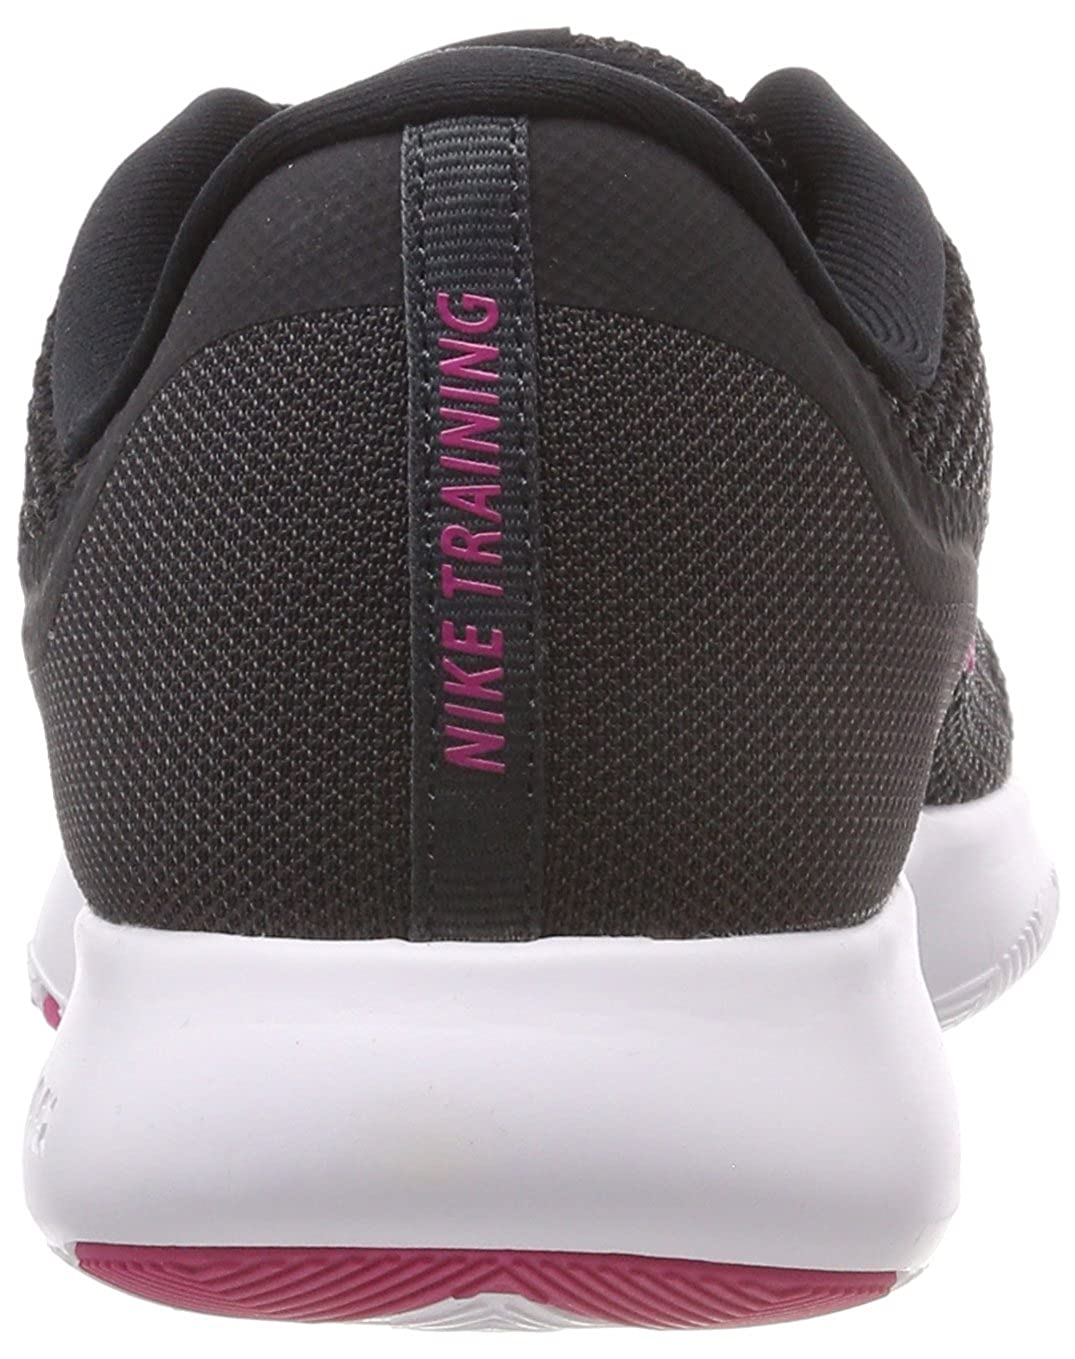 e12f1a23a977 Nike Women s W Flex Trainer 7 Fitness Shoes  Amazon.co.uk  Shoes   Bags